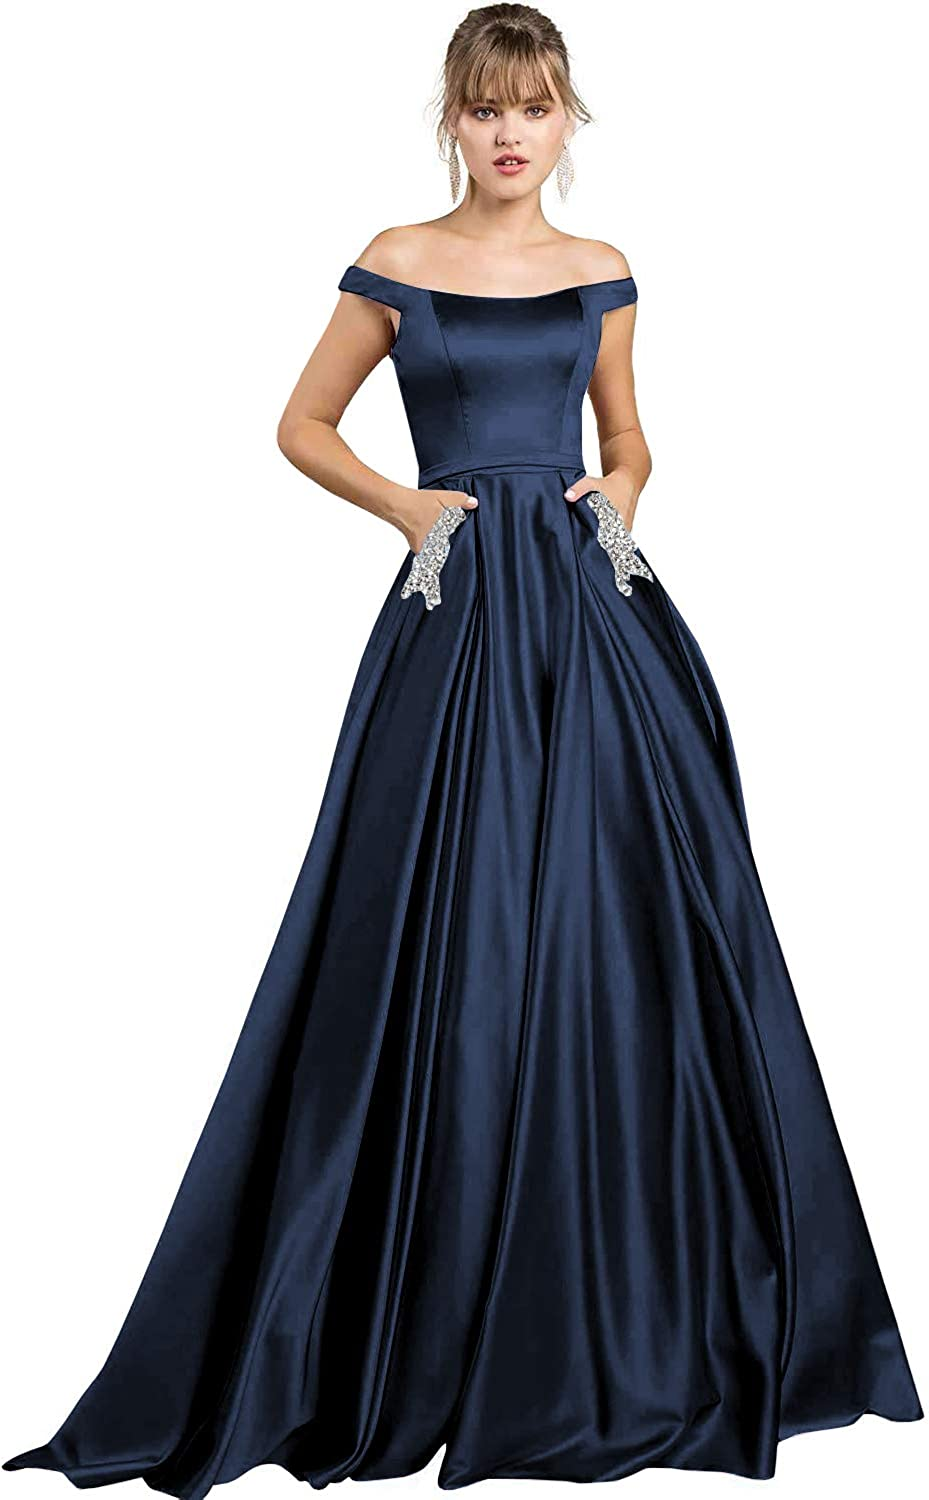 Yilis Women's Off The Satin A-Line Evening Prom Dress Long Party Gown